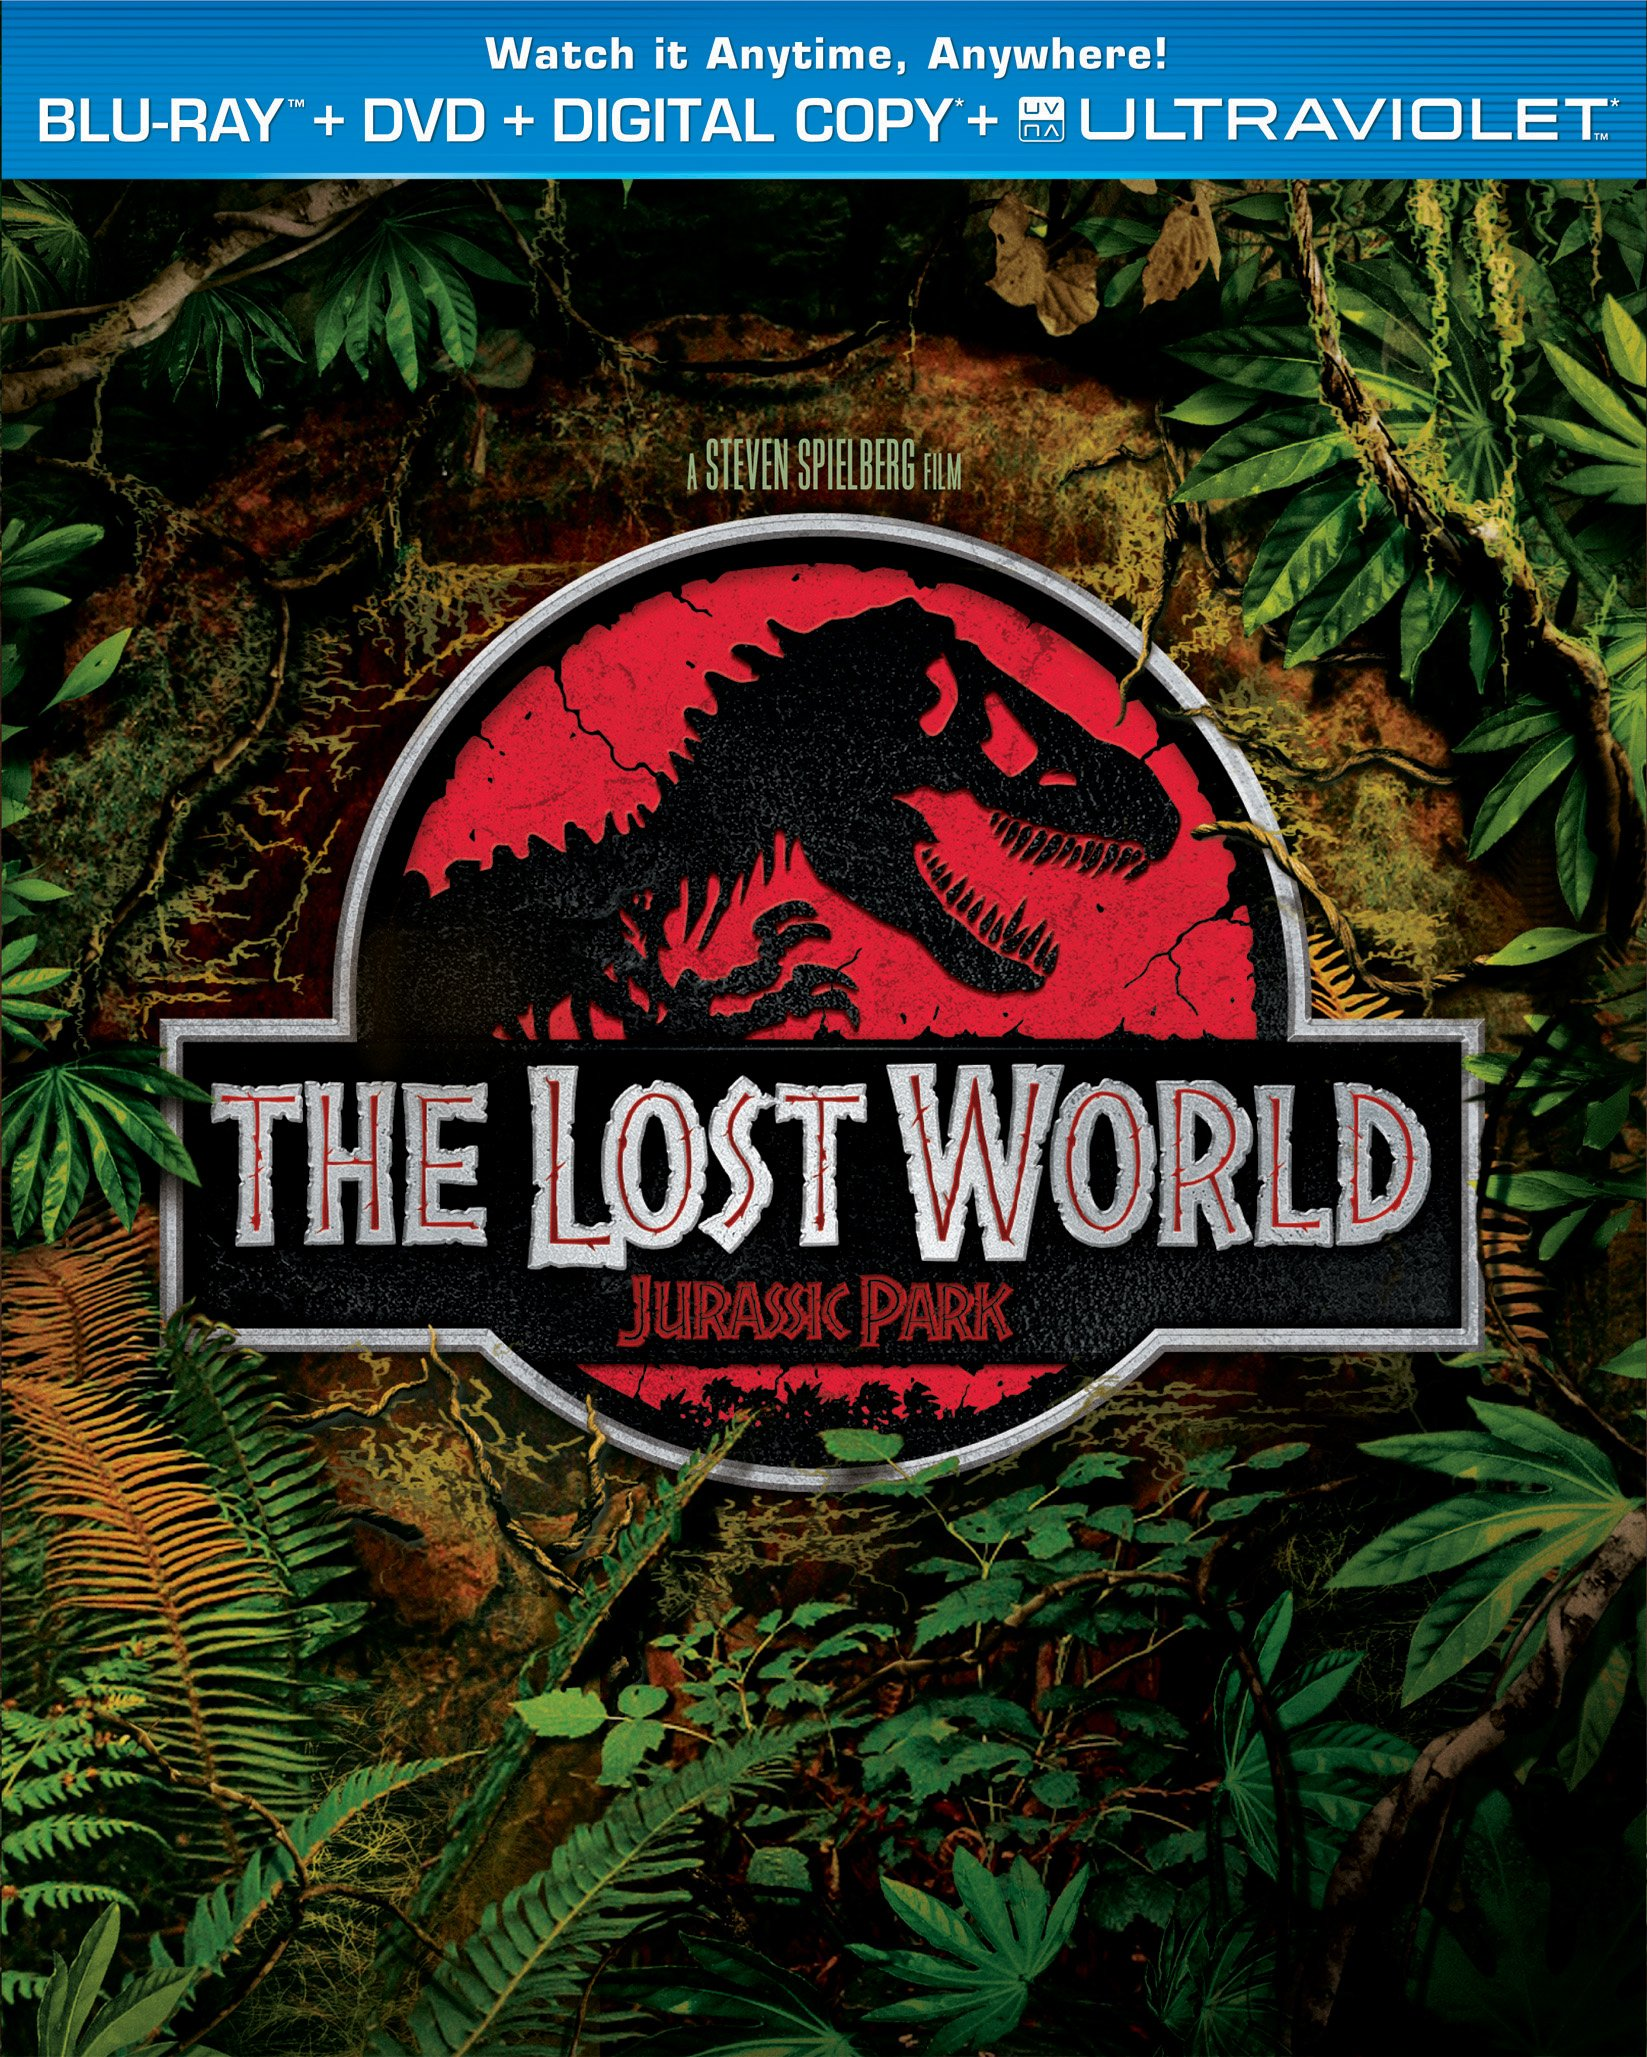 Blu-ray : The Lost World: Jurassic Park (With DVD, Ultraviolet Digital Copy, Widescreen, Snap Case, Slipsleeve Packaging)